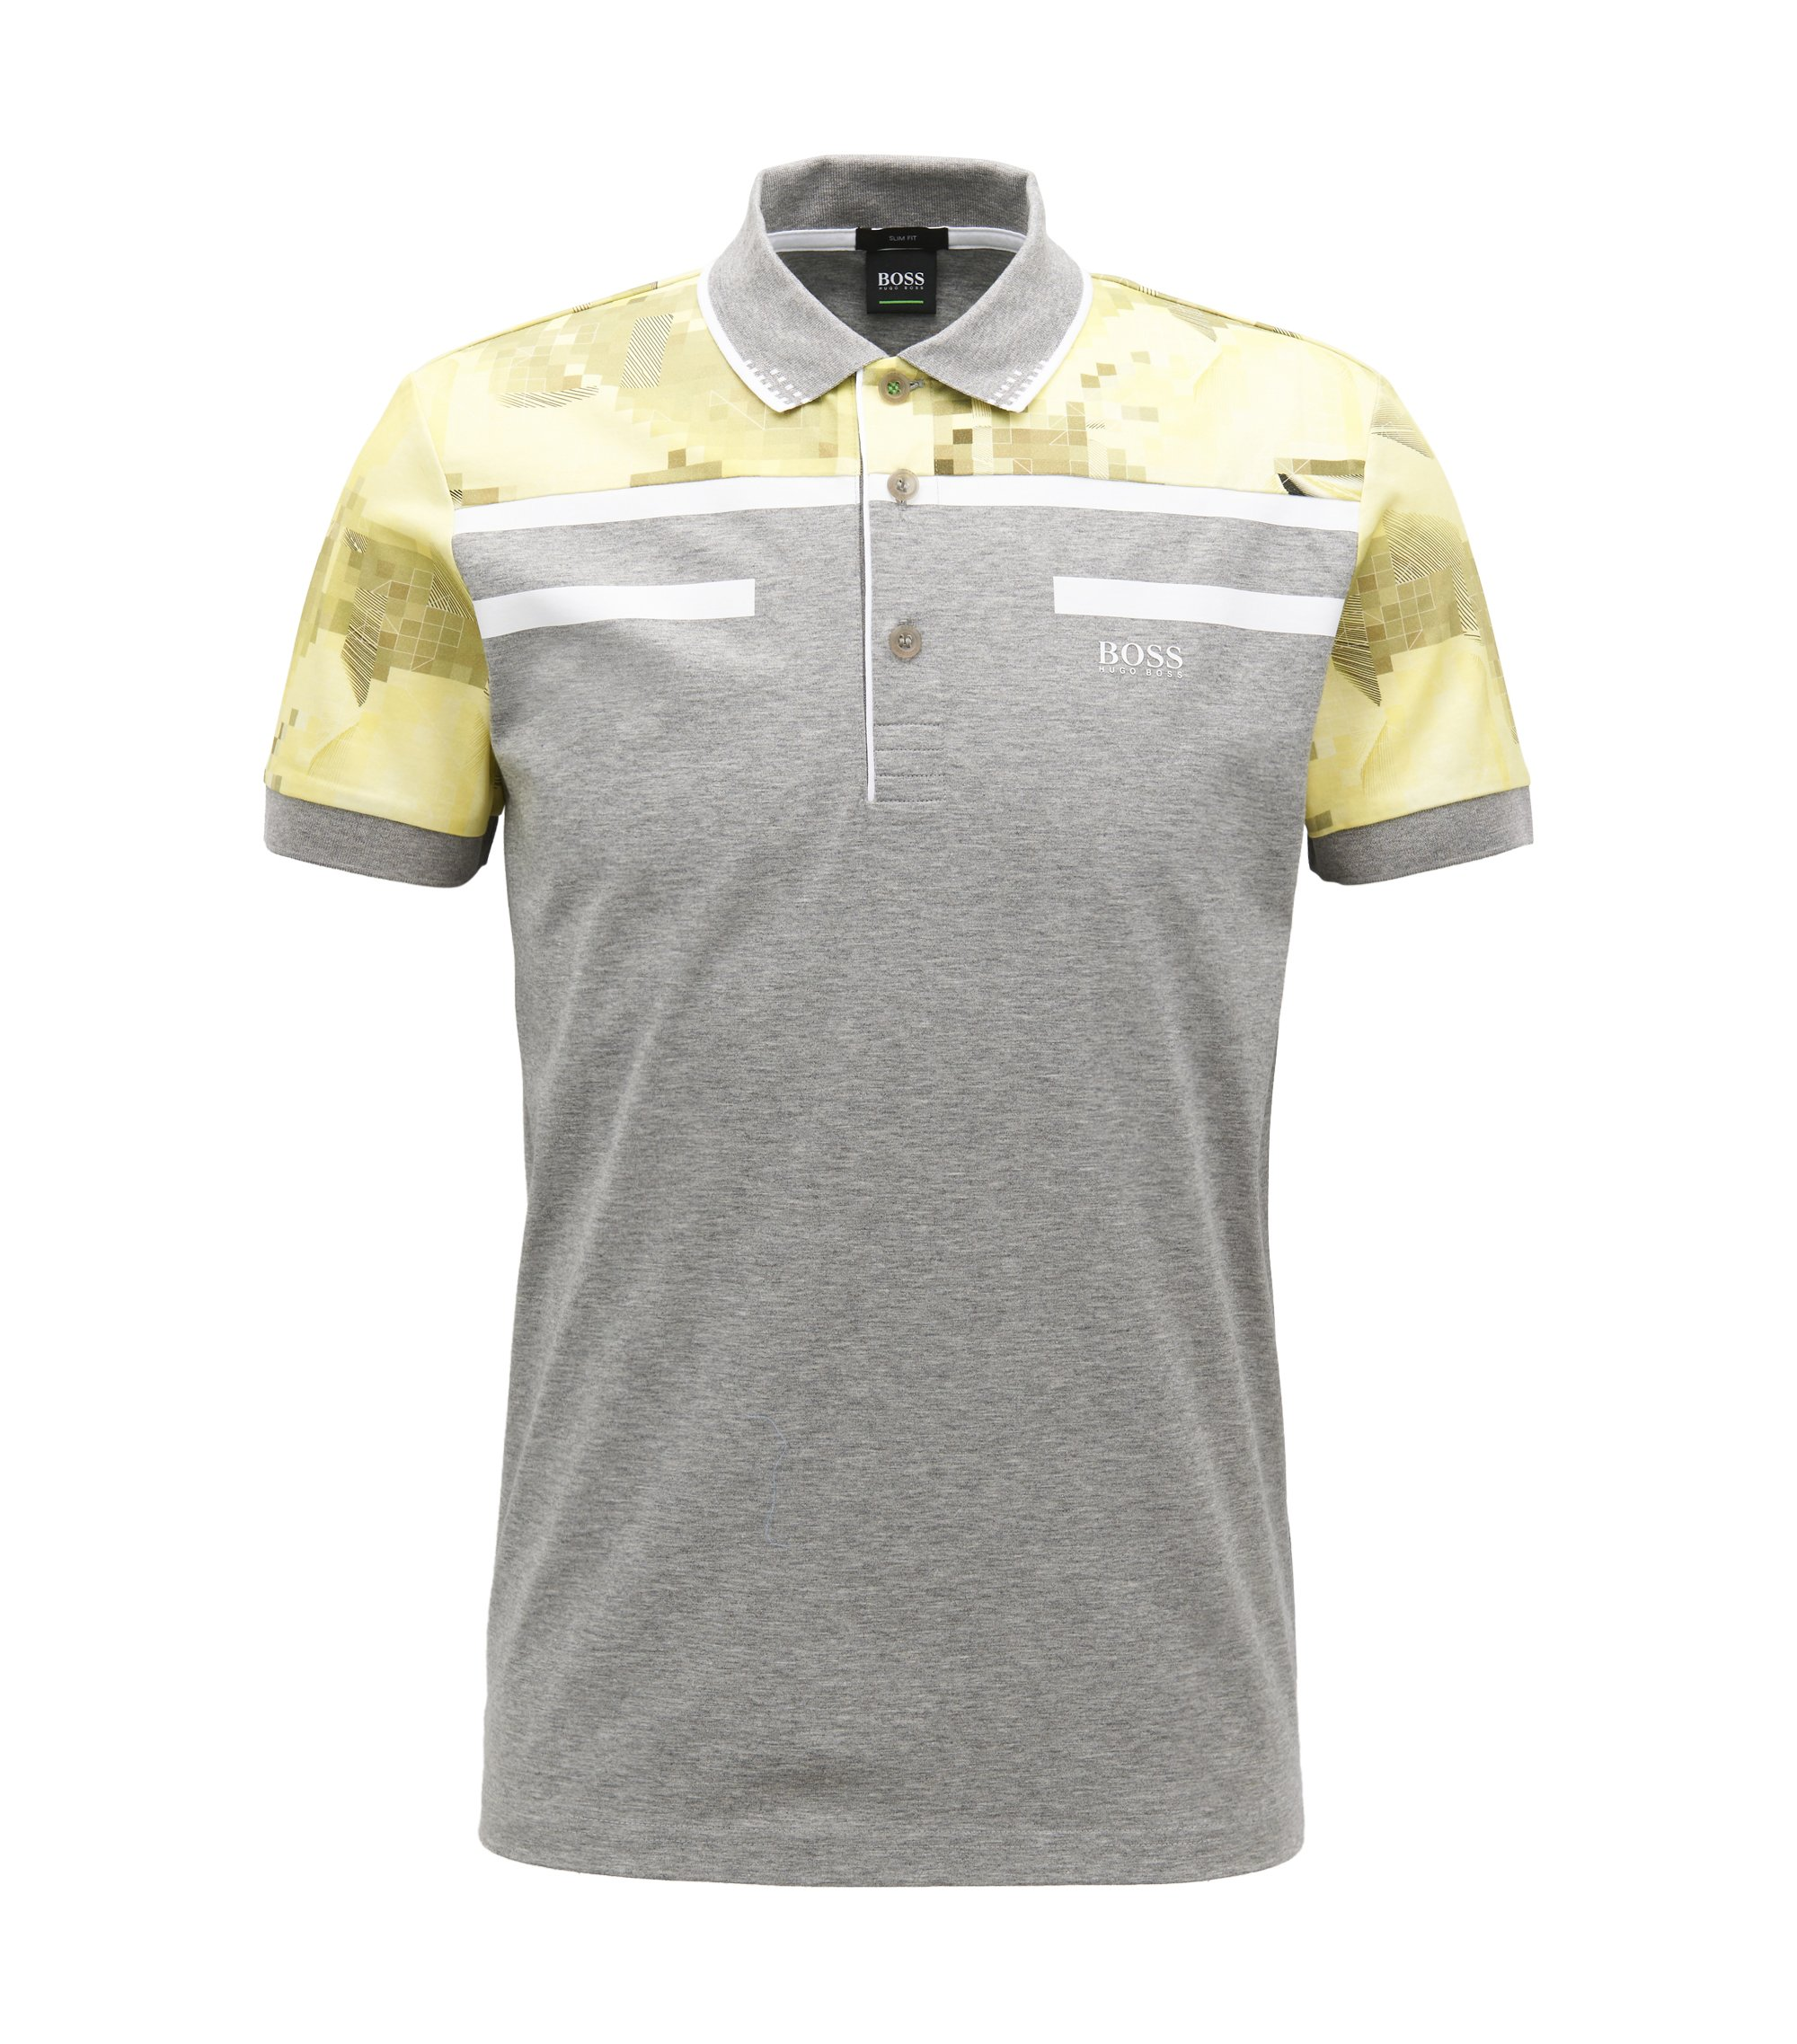 Geometric Mercerized Cotton Polo Shirt, Slim Fit | Paule, Light Grey